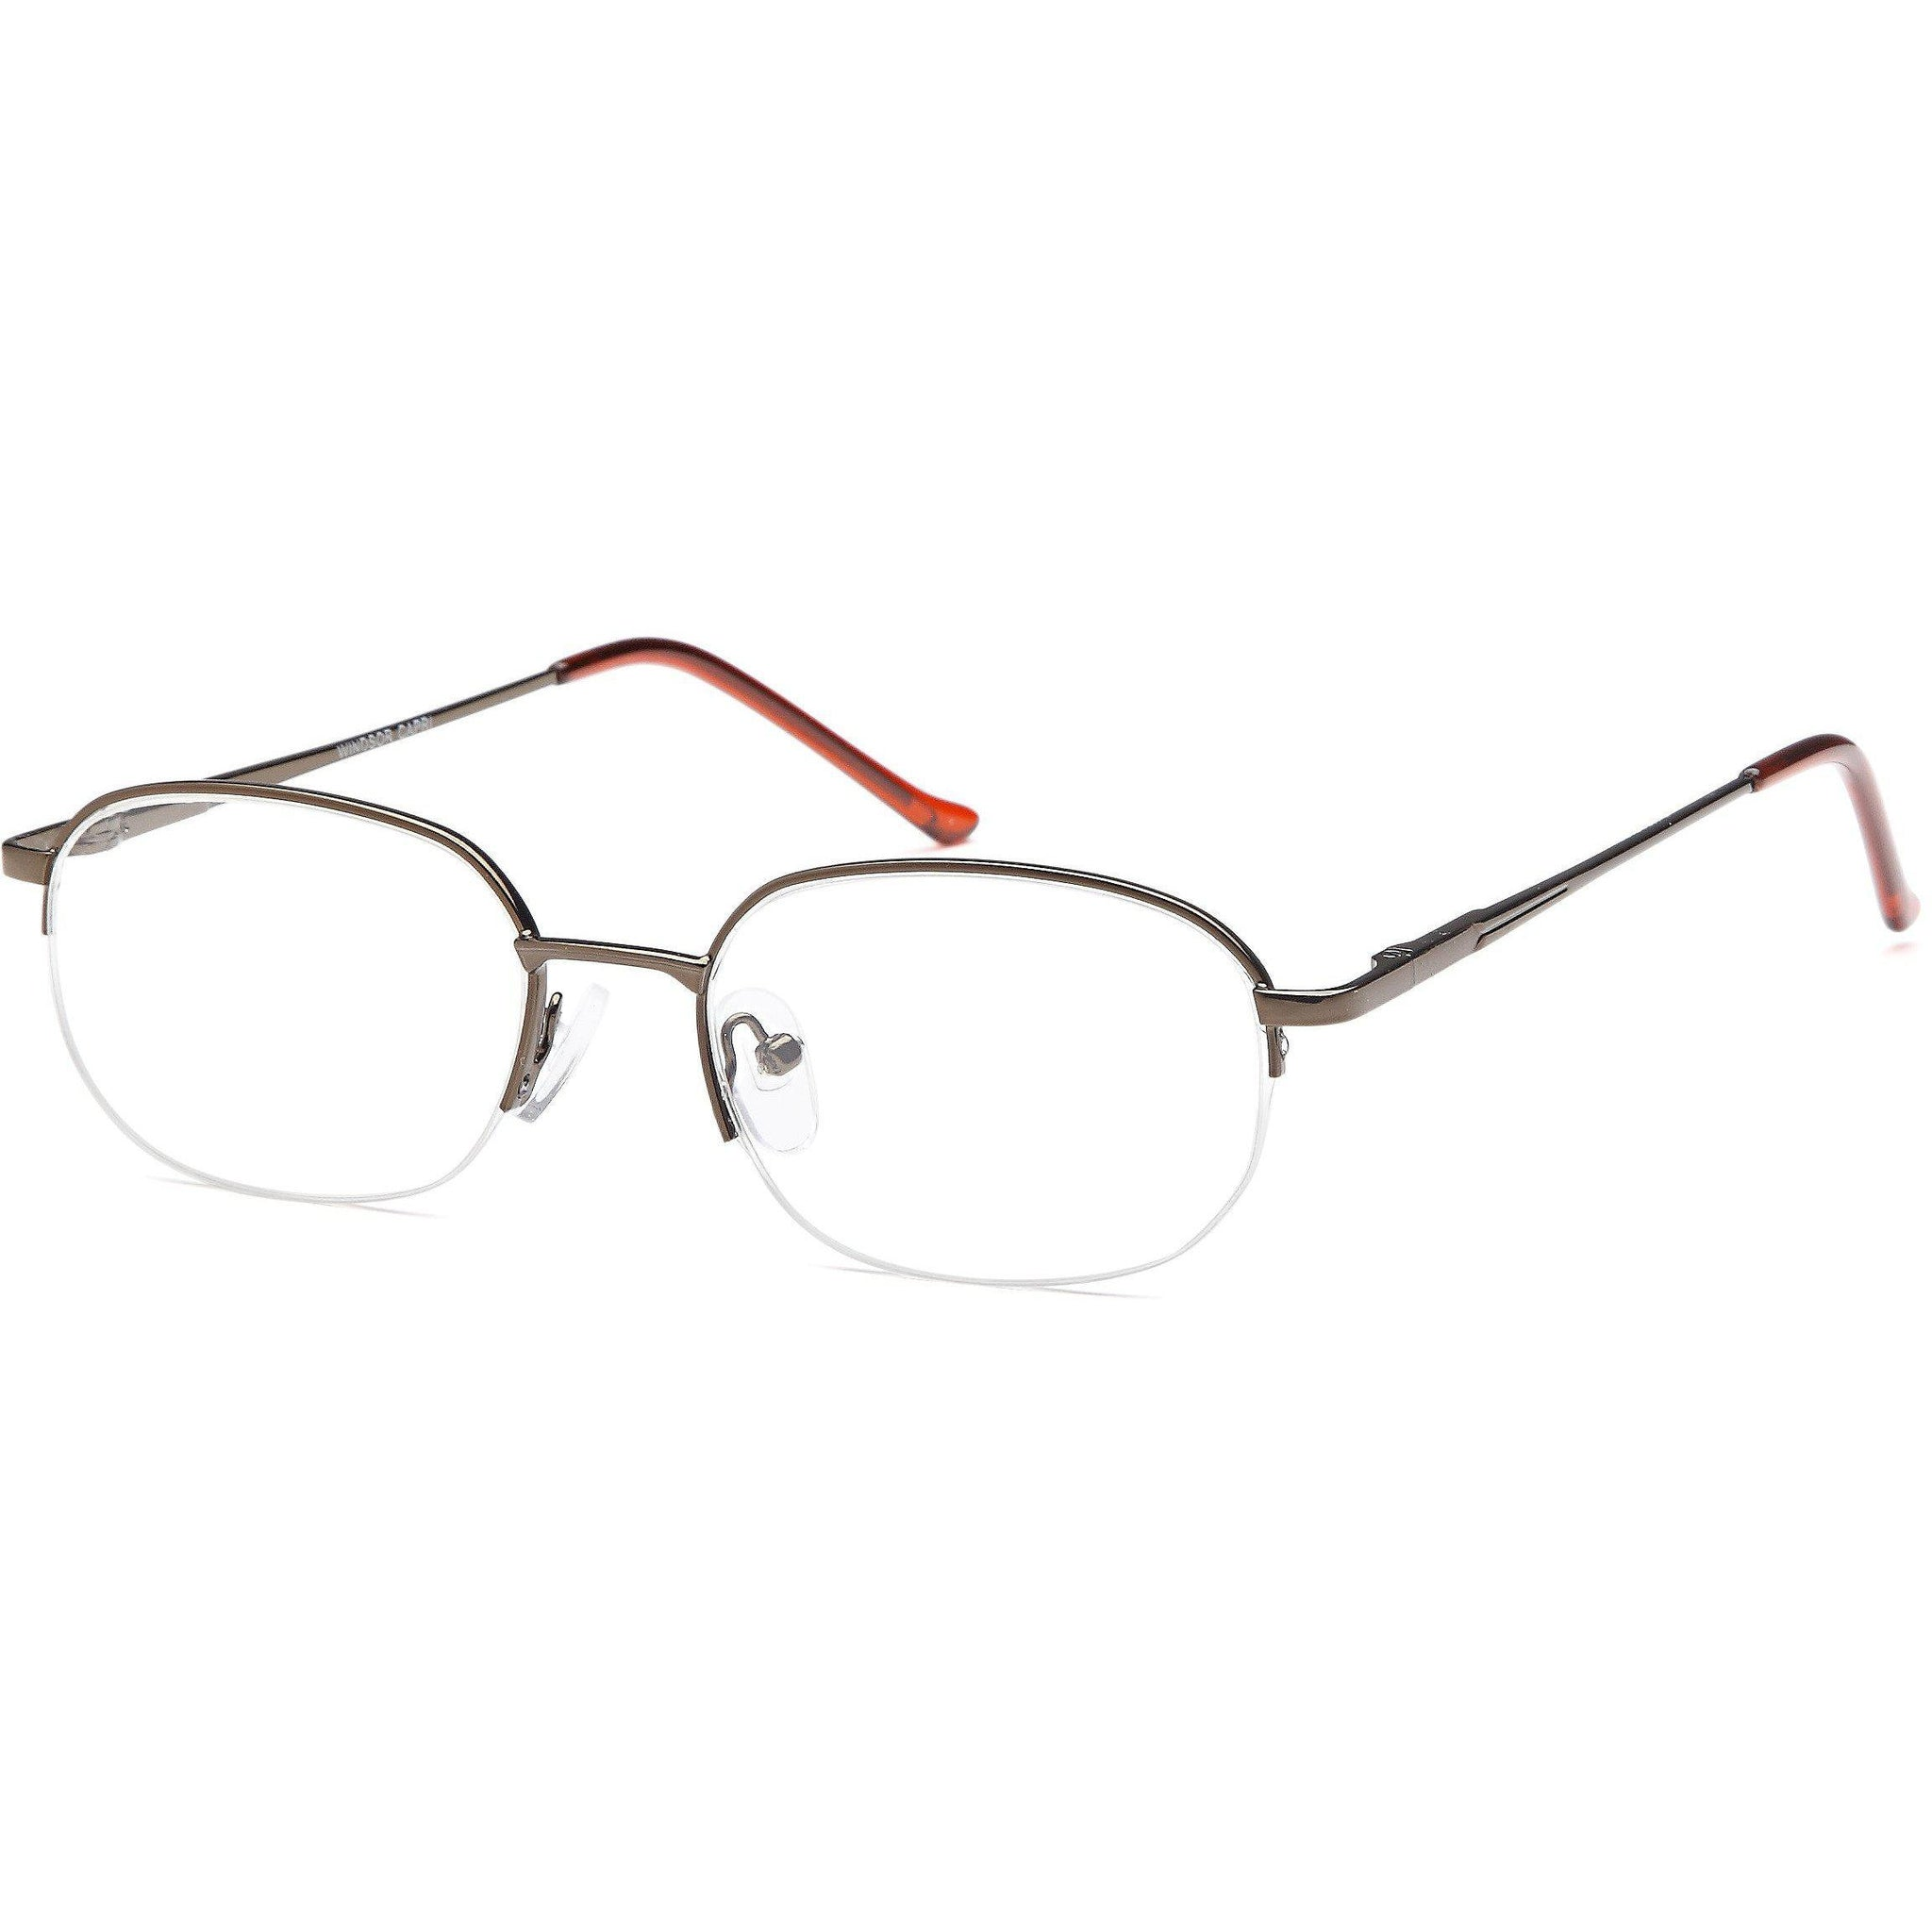 Classics Prescription Glasses WINDSOR Frames